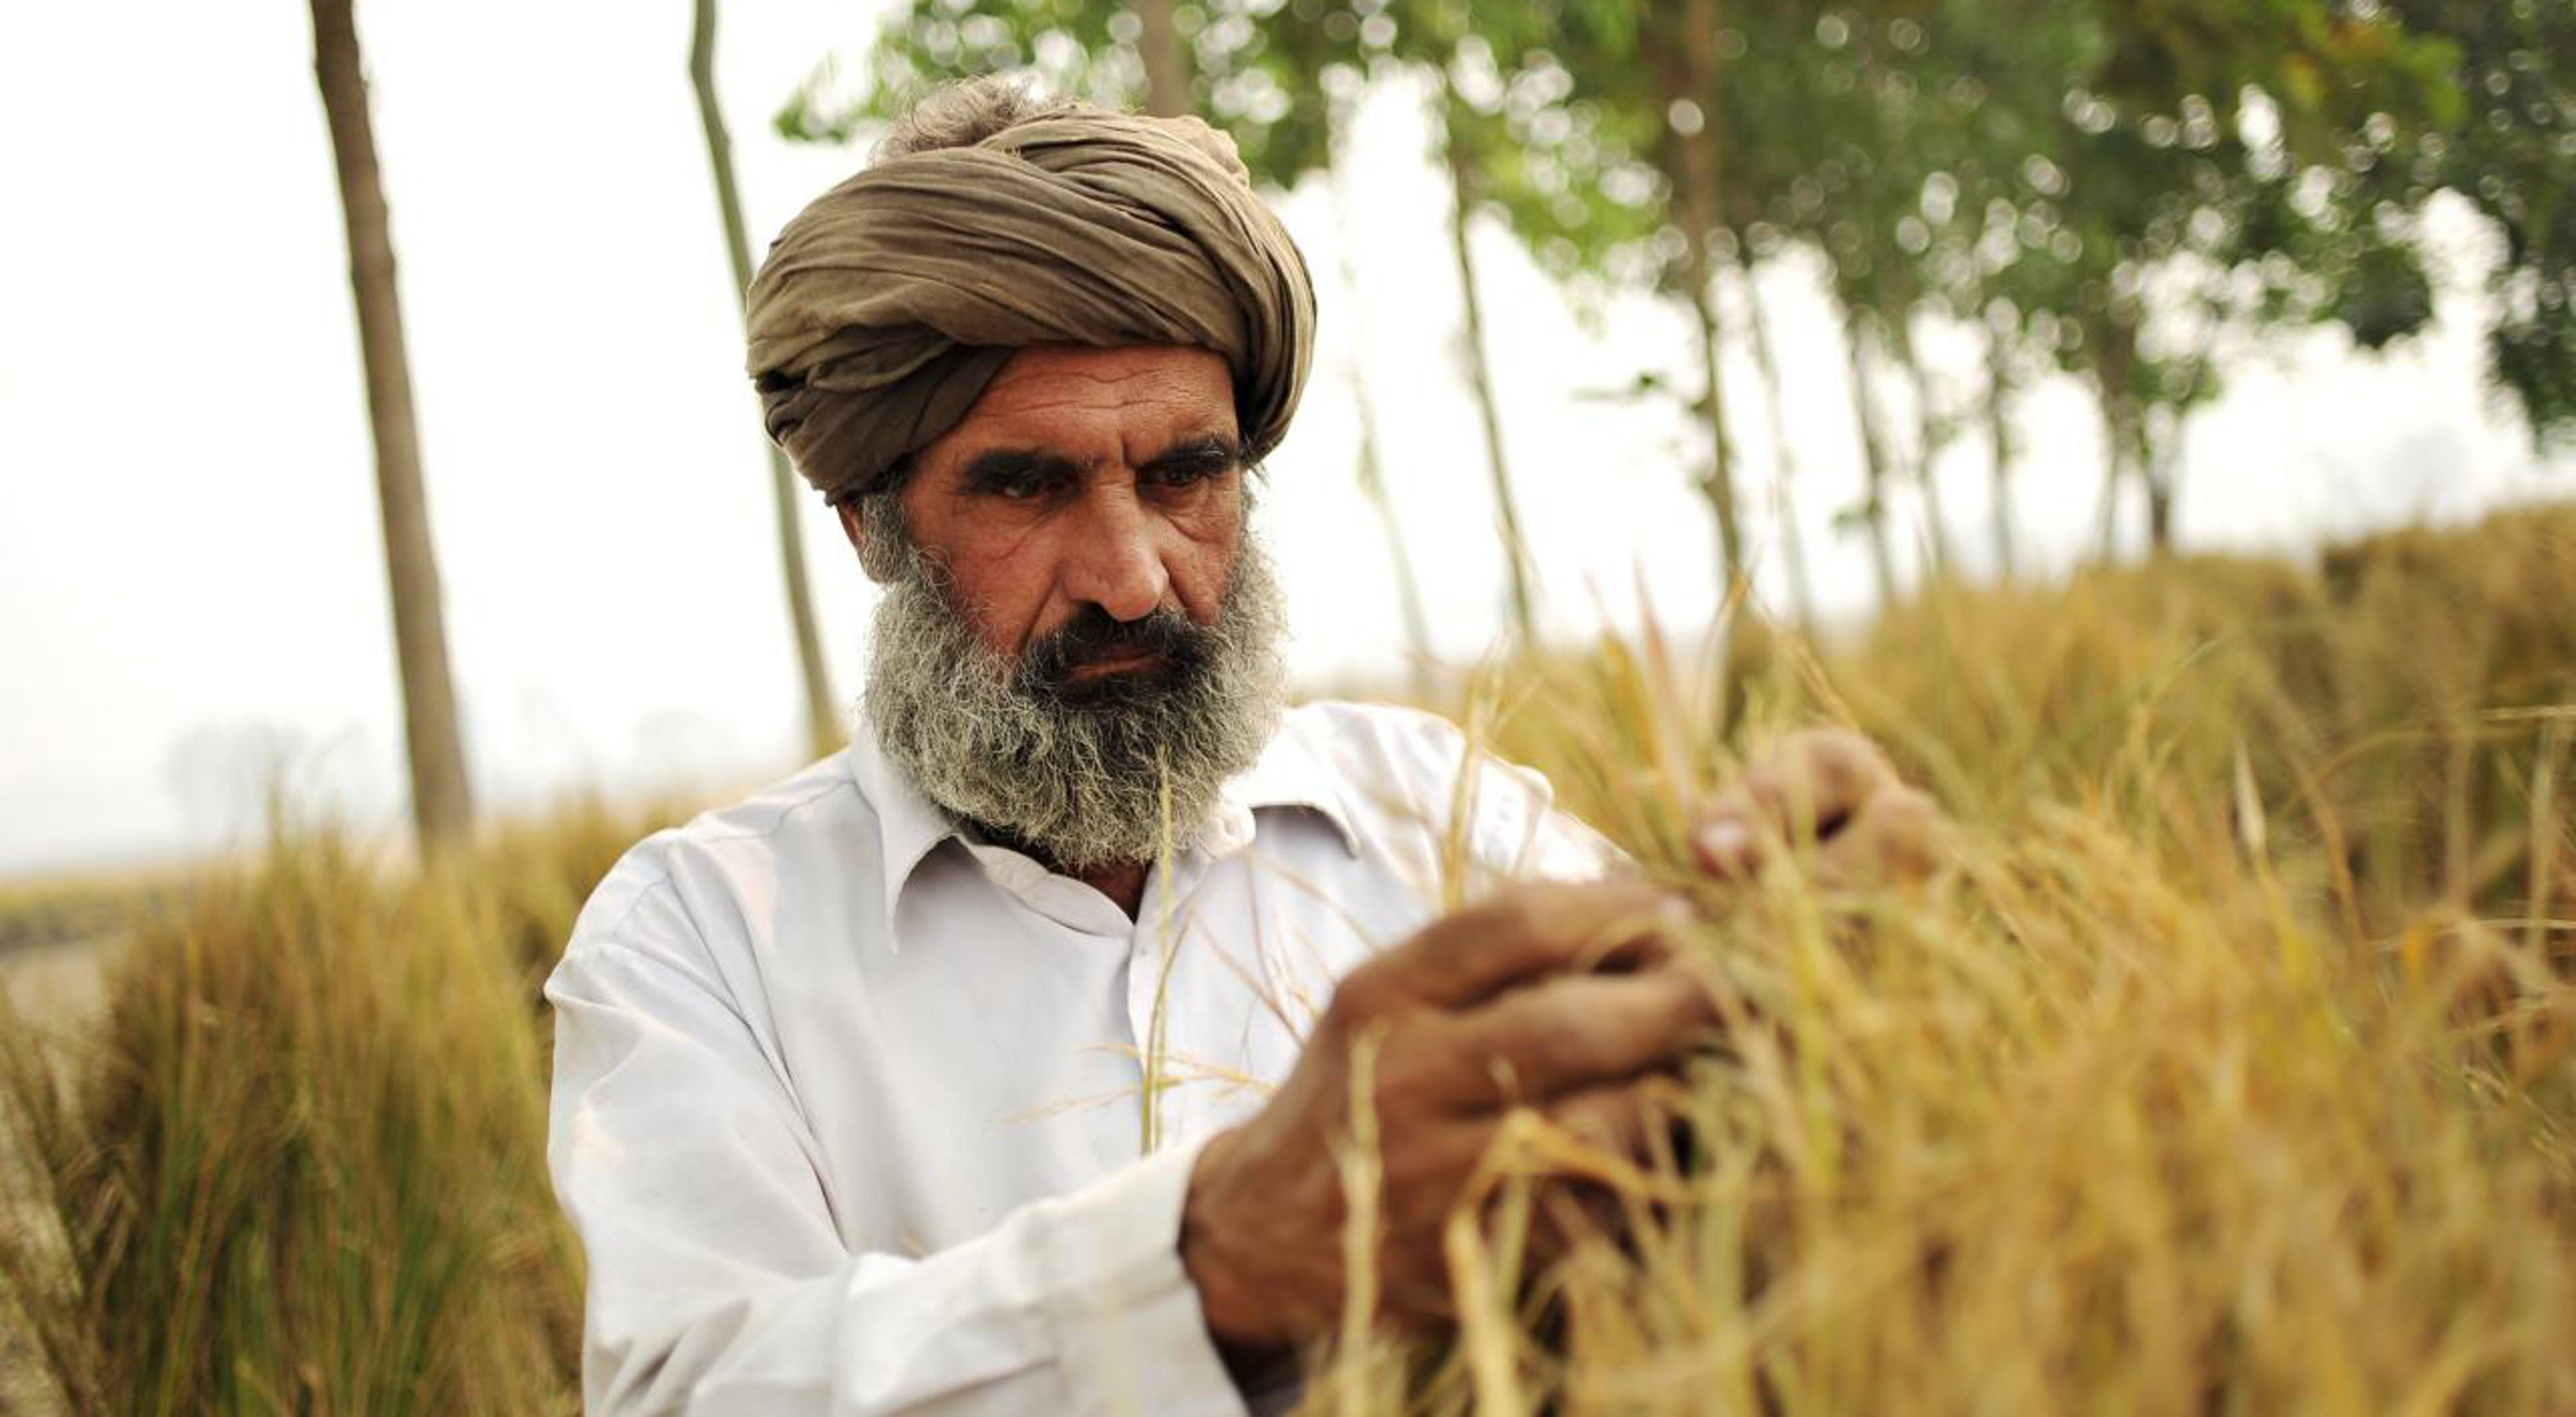 A rice farmer inspects his plants.